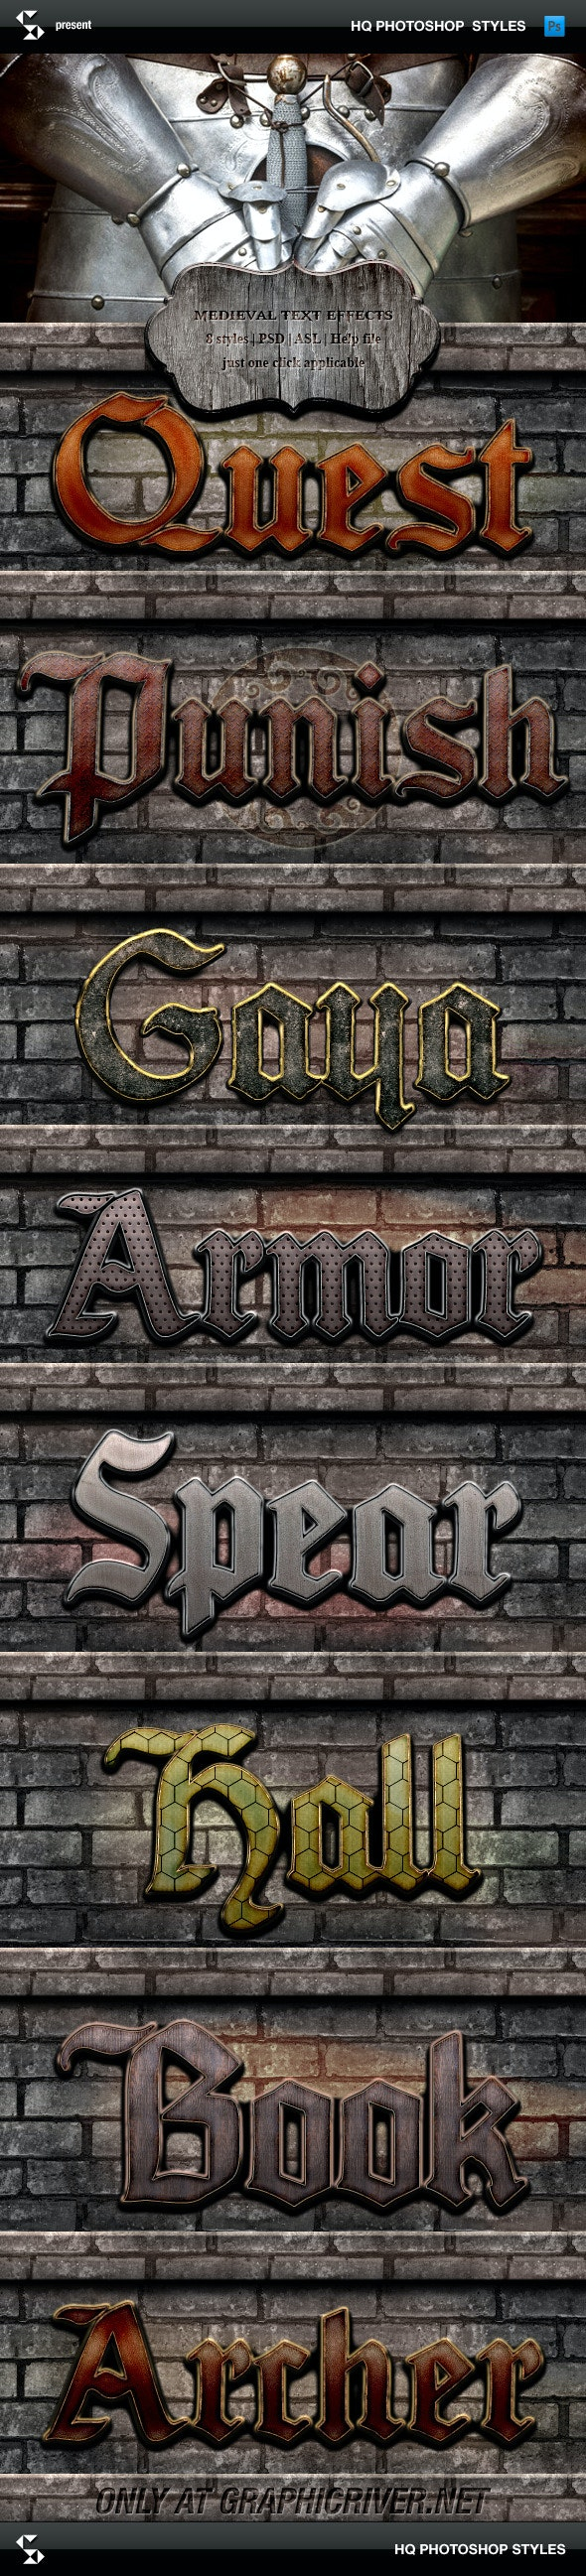 Medieval Text Effects - Medieval Game Styles - Text Effects Styles